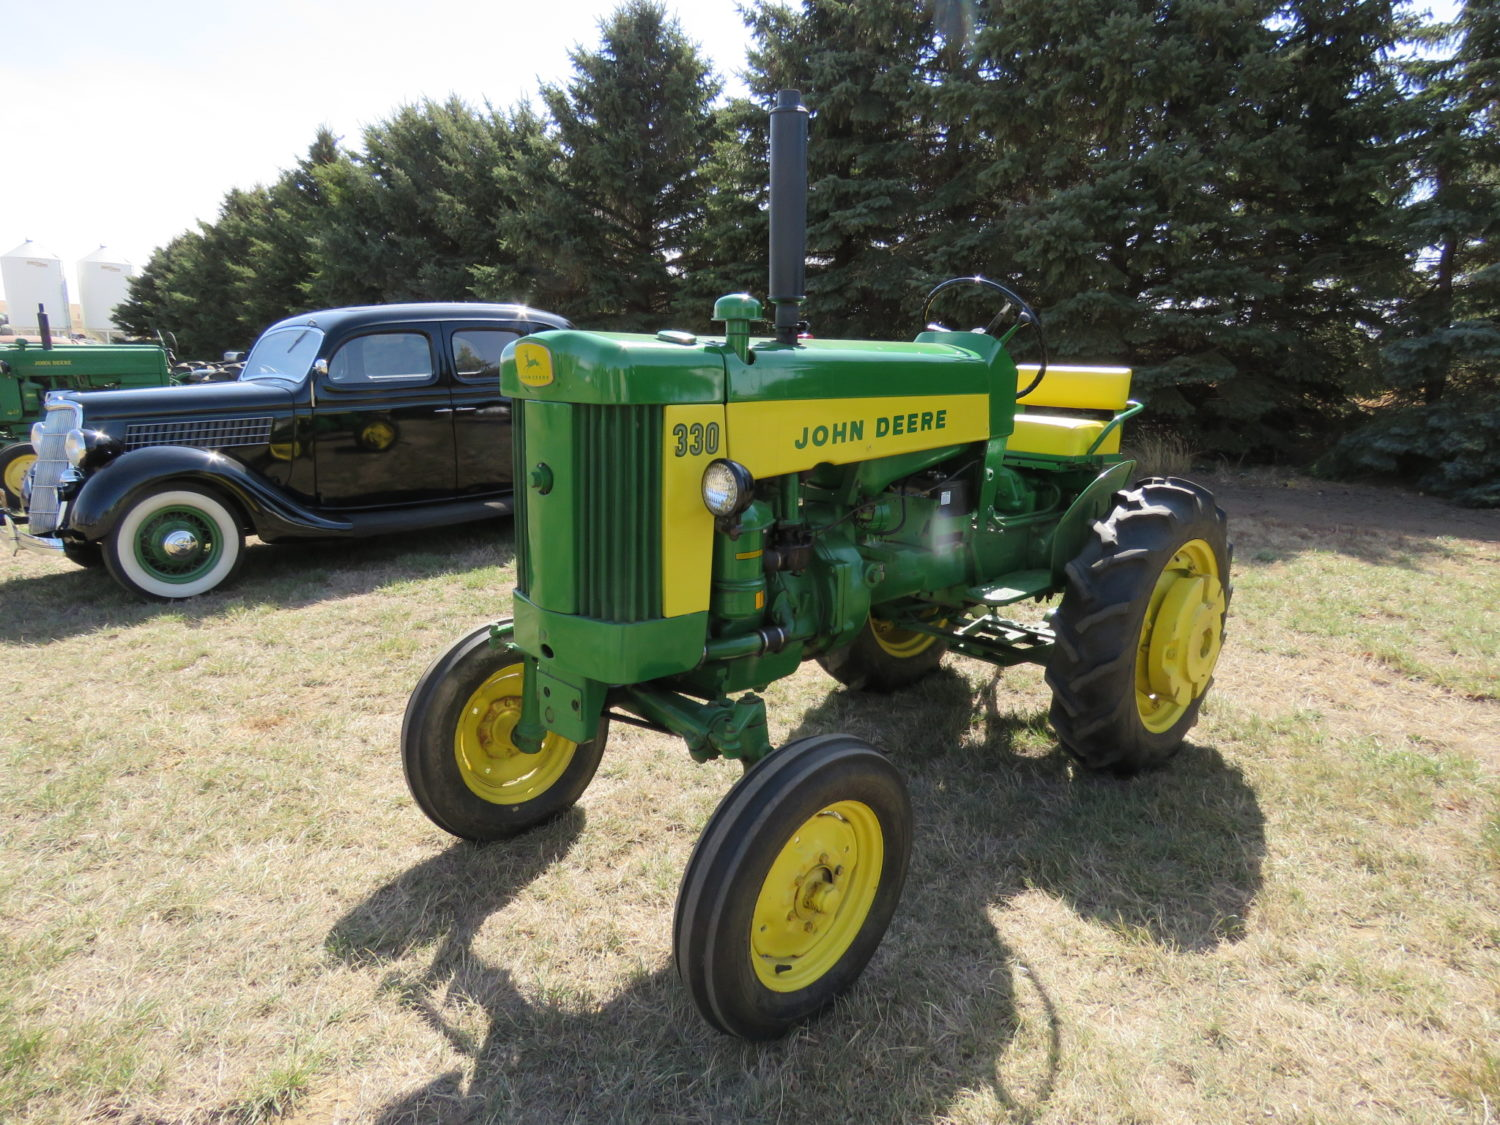 Fabulous Collector Cars, Antique Tractors, Memorabilia & More! The Krinke Collection - image 20